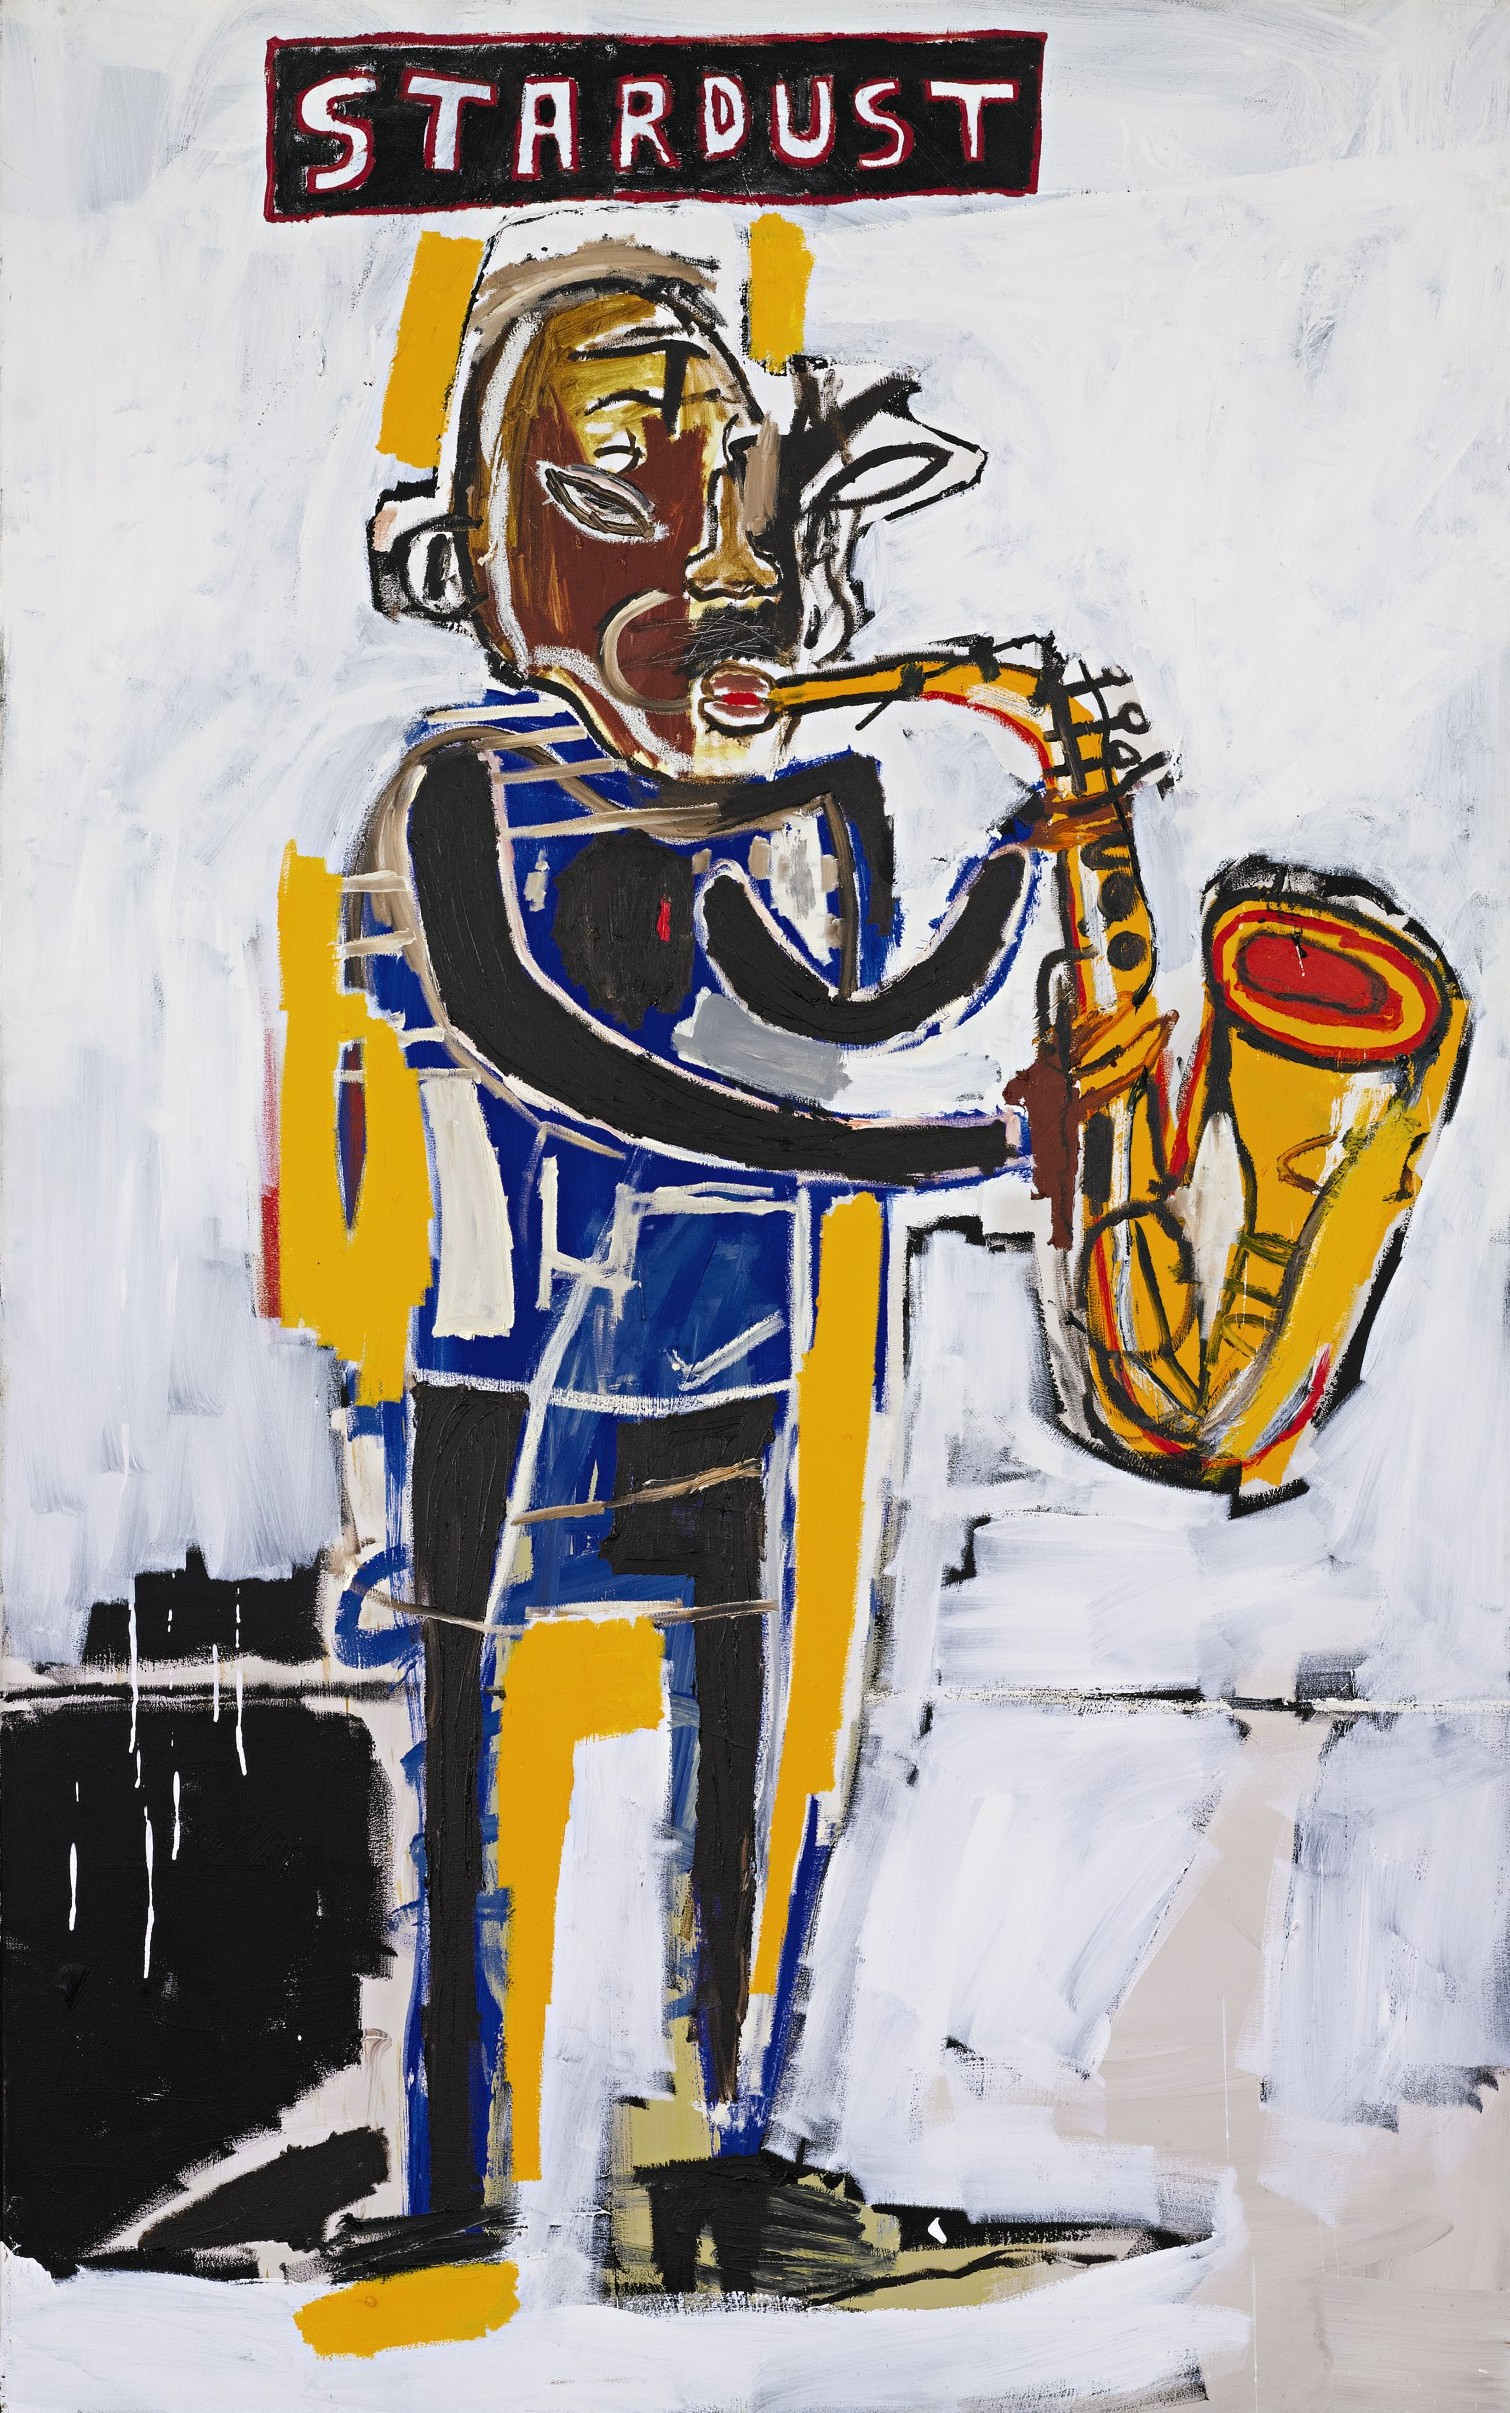 8636-Lot-52-Basquiat-Stardust.jpg